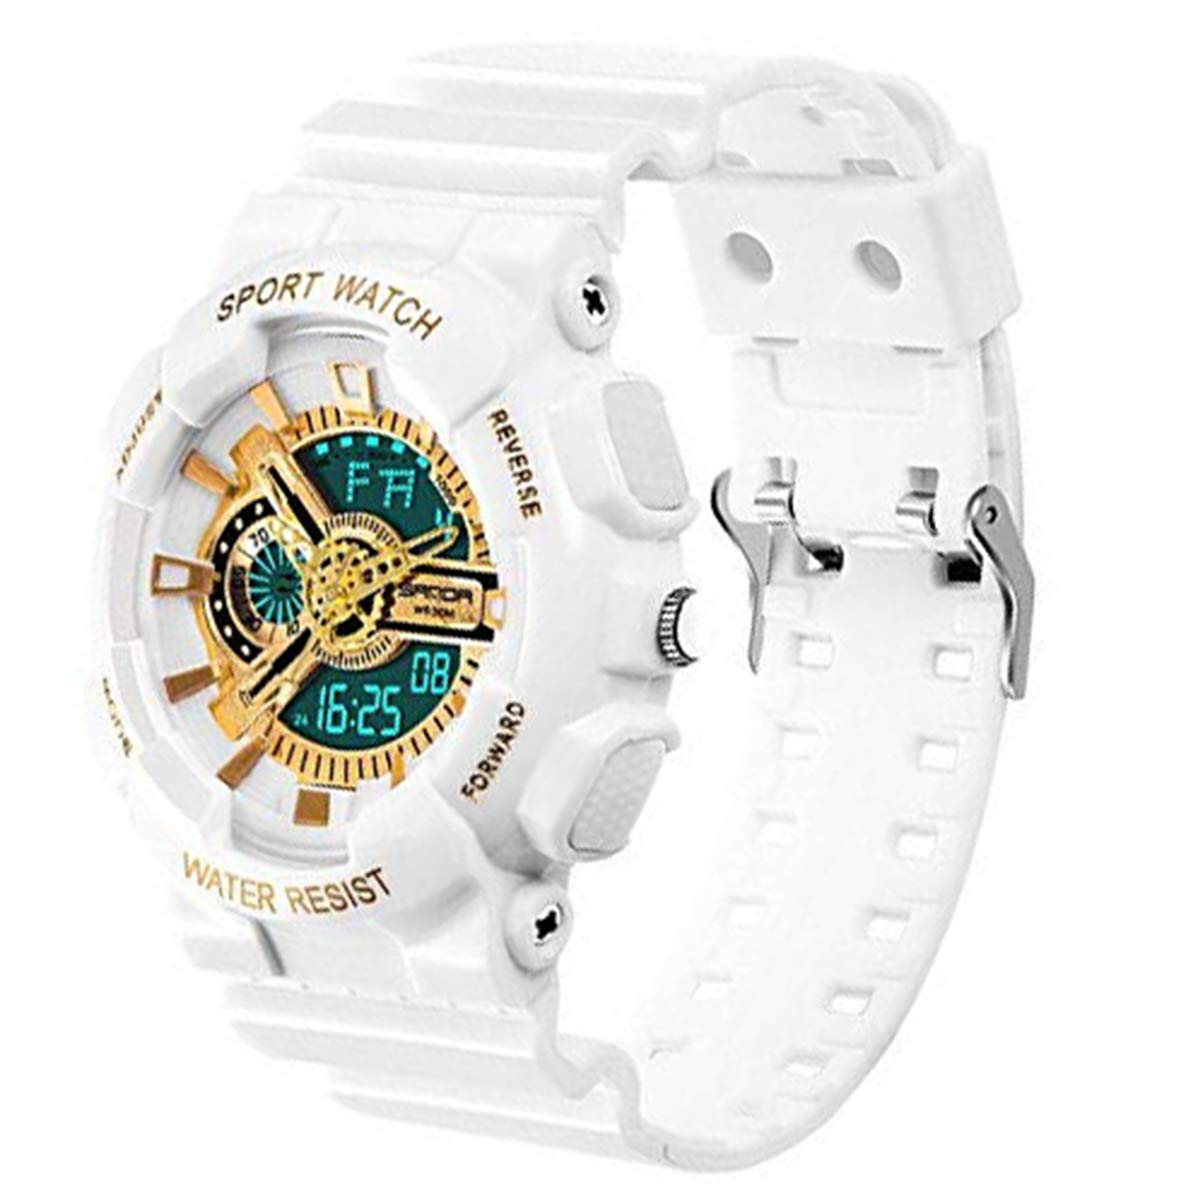 Boys Waterproof Watch with Alarm Chronograph Electronic Outdoor Sport Wrist Watch White+Gold by WZTSXB